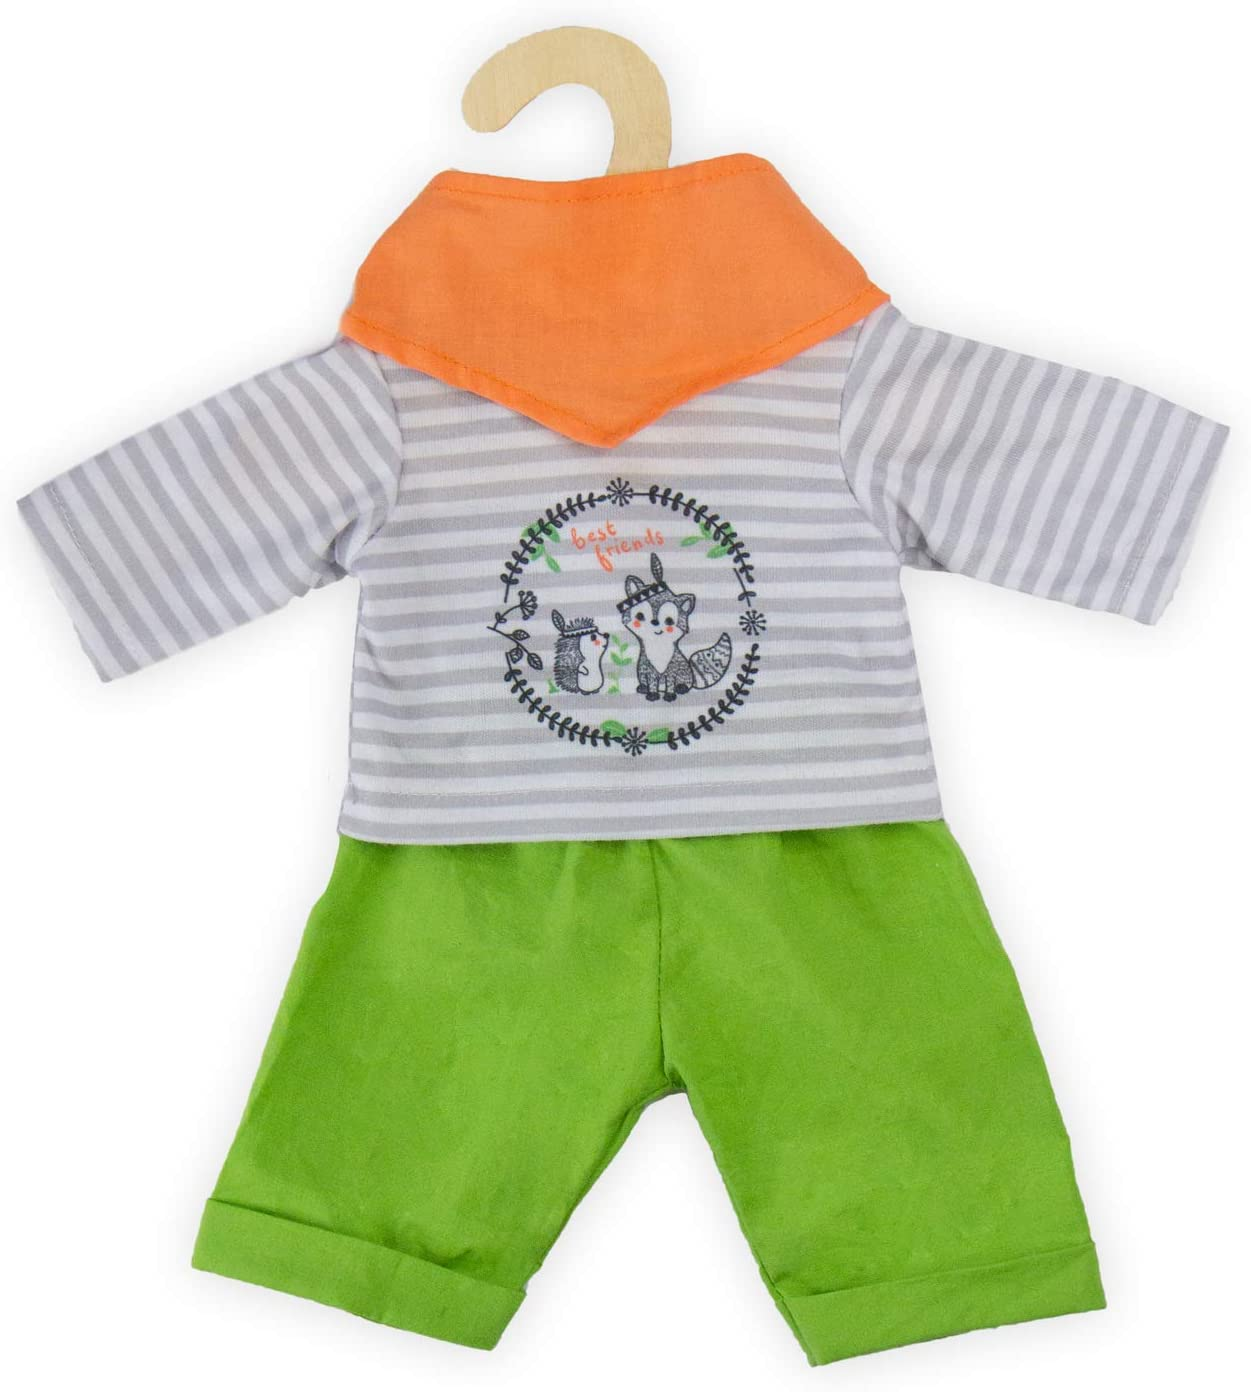 Heless 2240Heless Jogging Suit for Doll